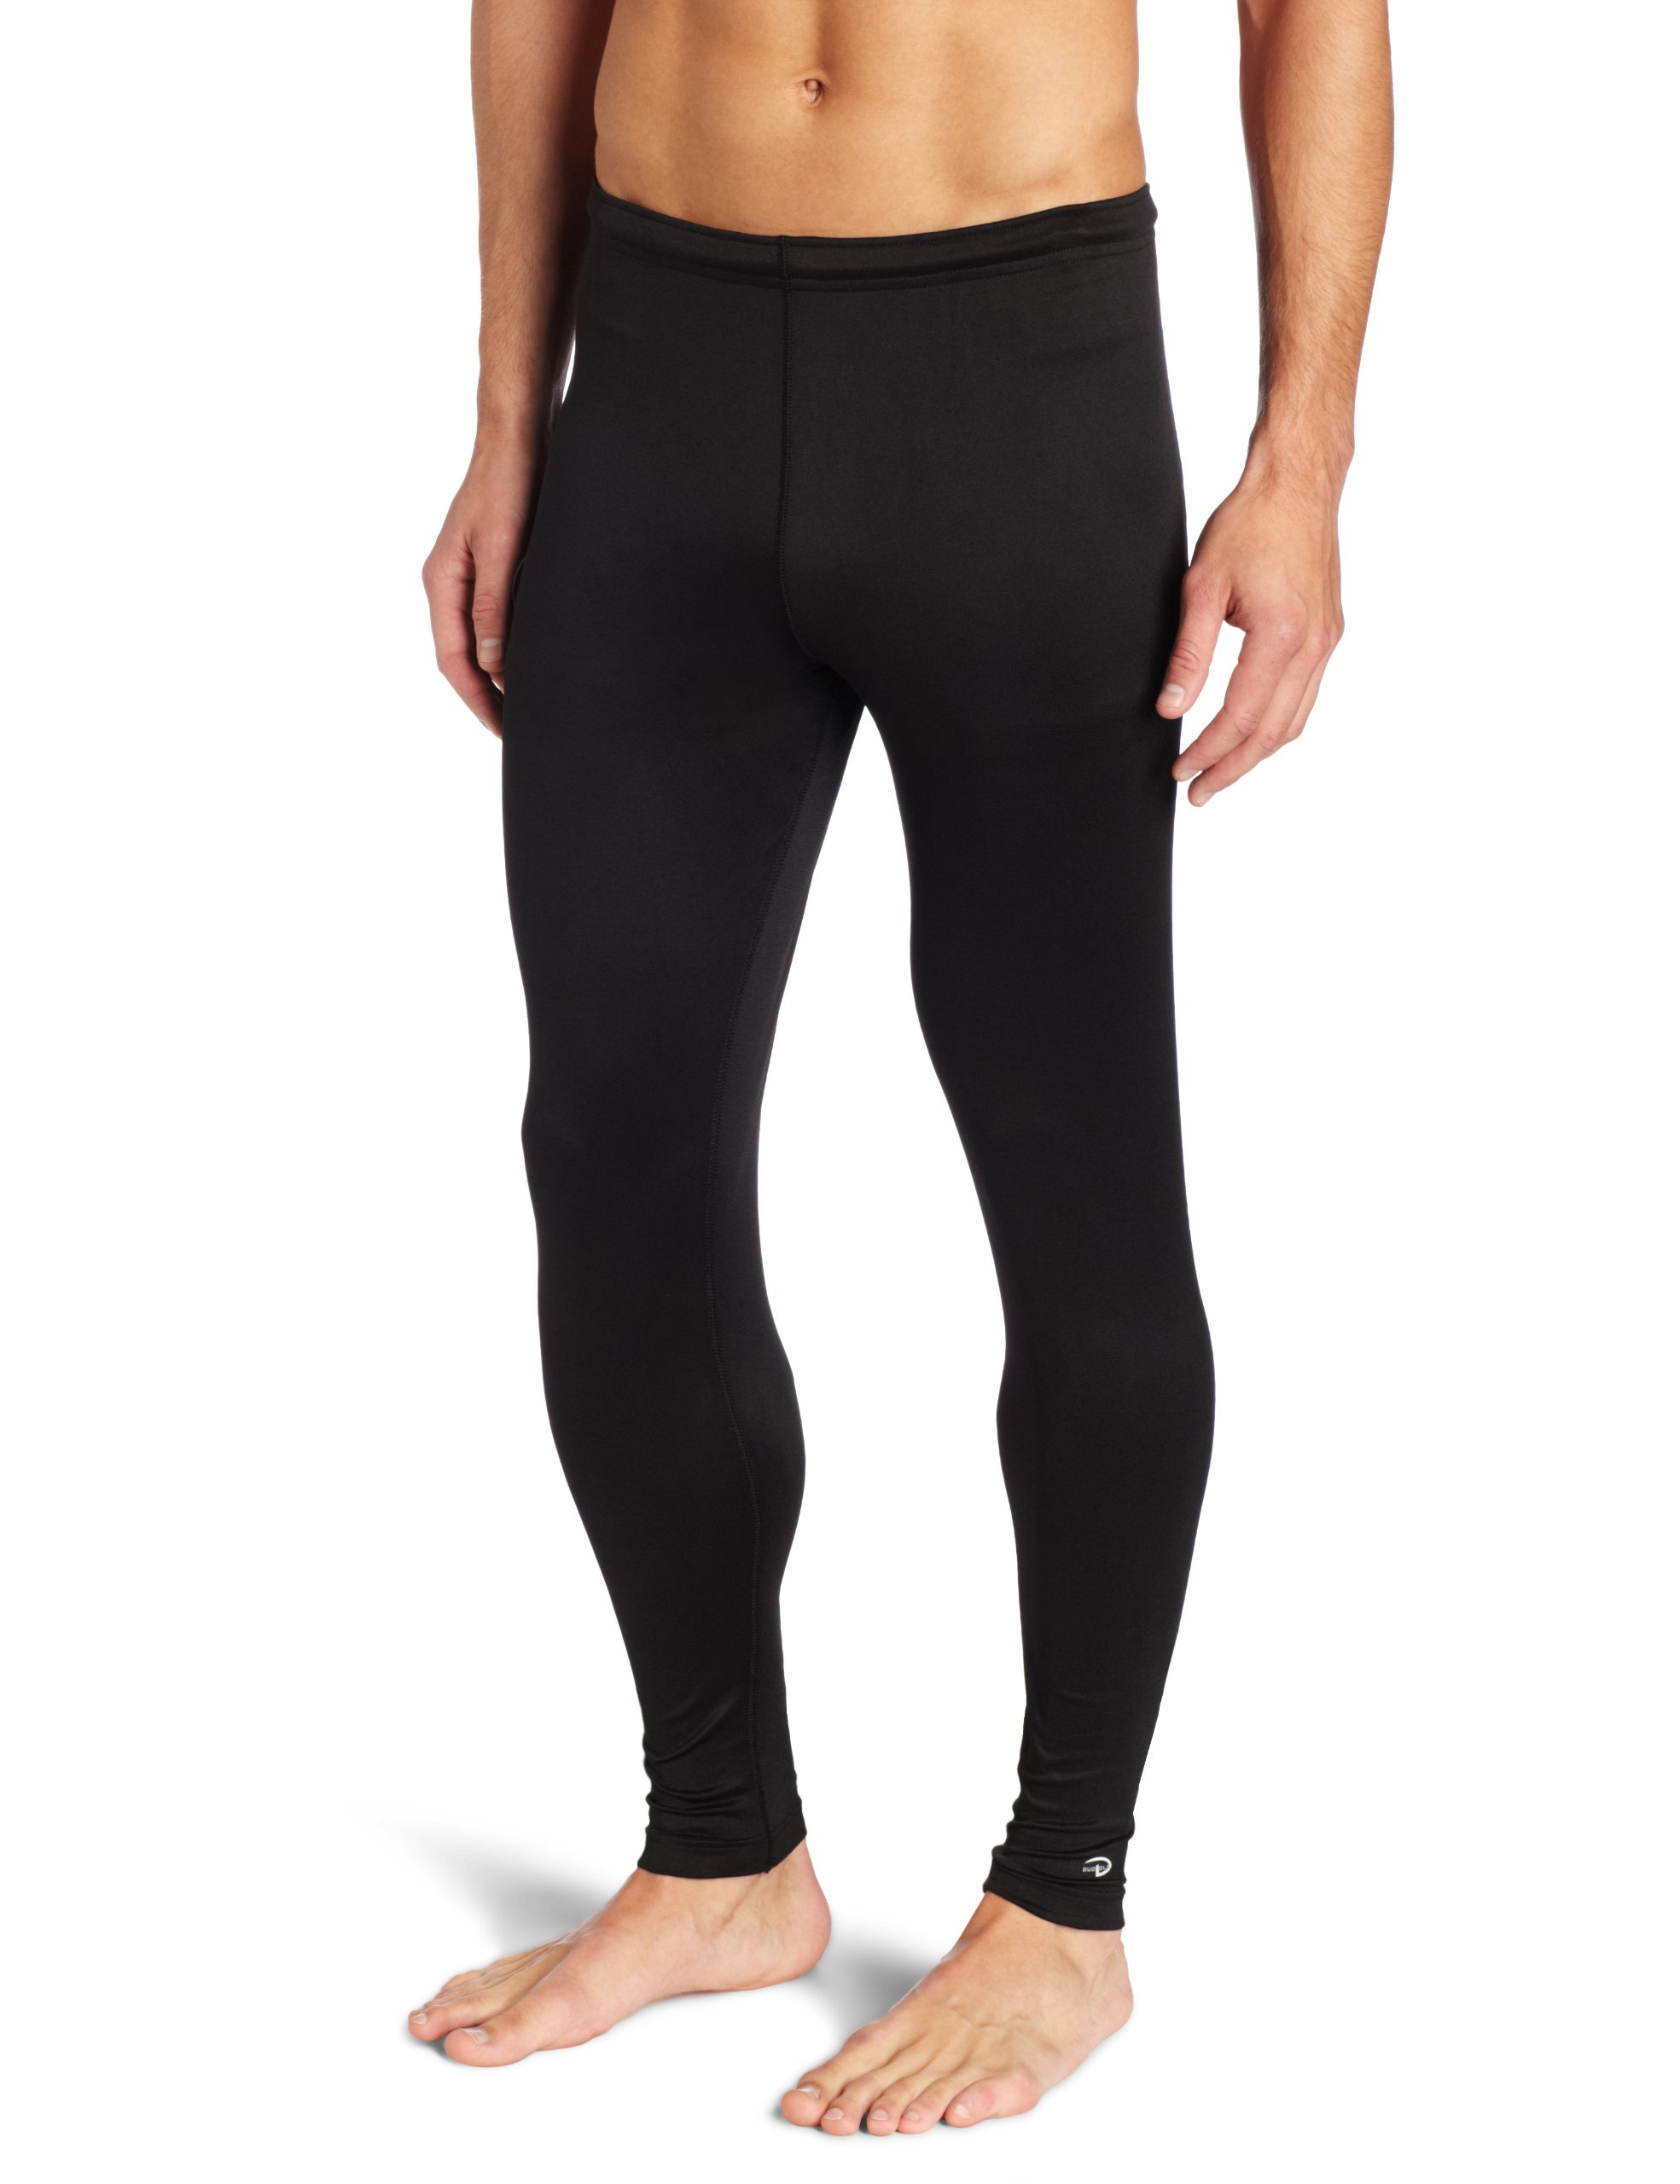 Duofold Men's Mid Weight Varitherm Thermal Pant, Black, X-Large